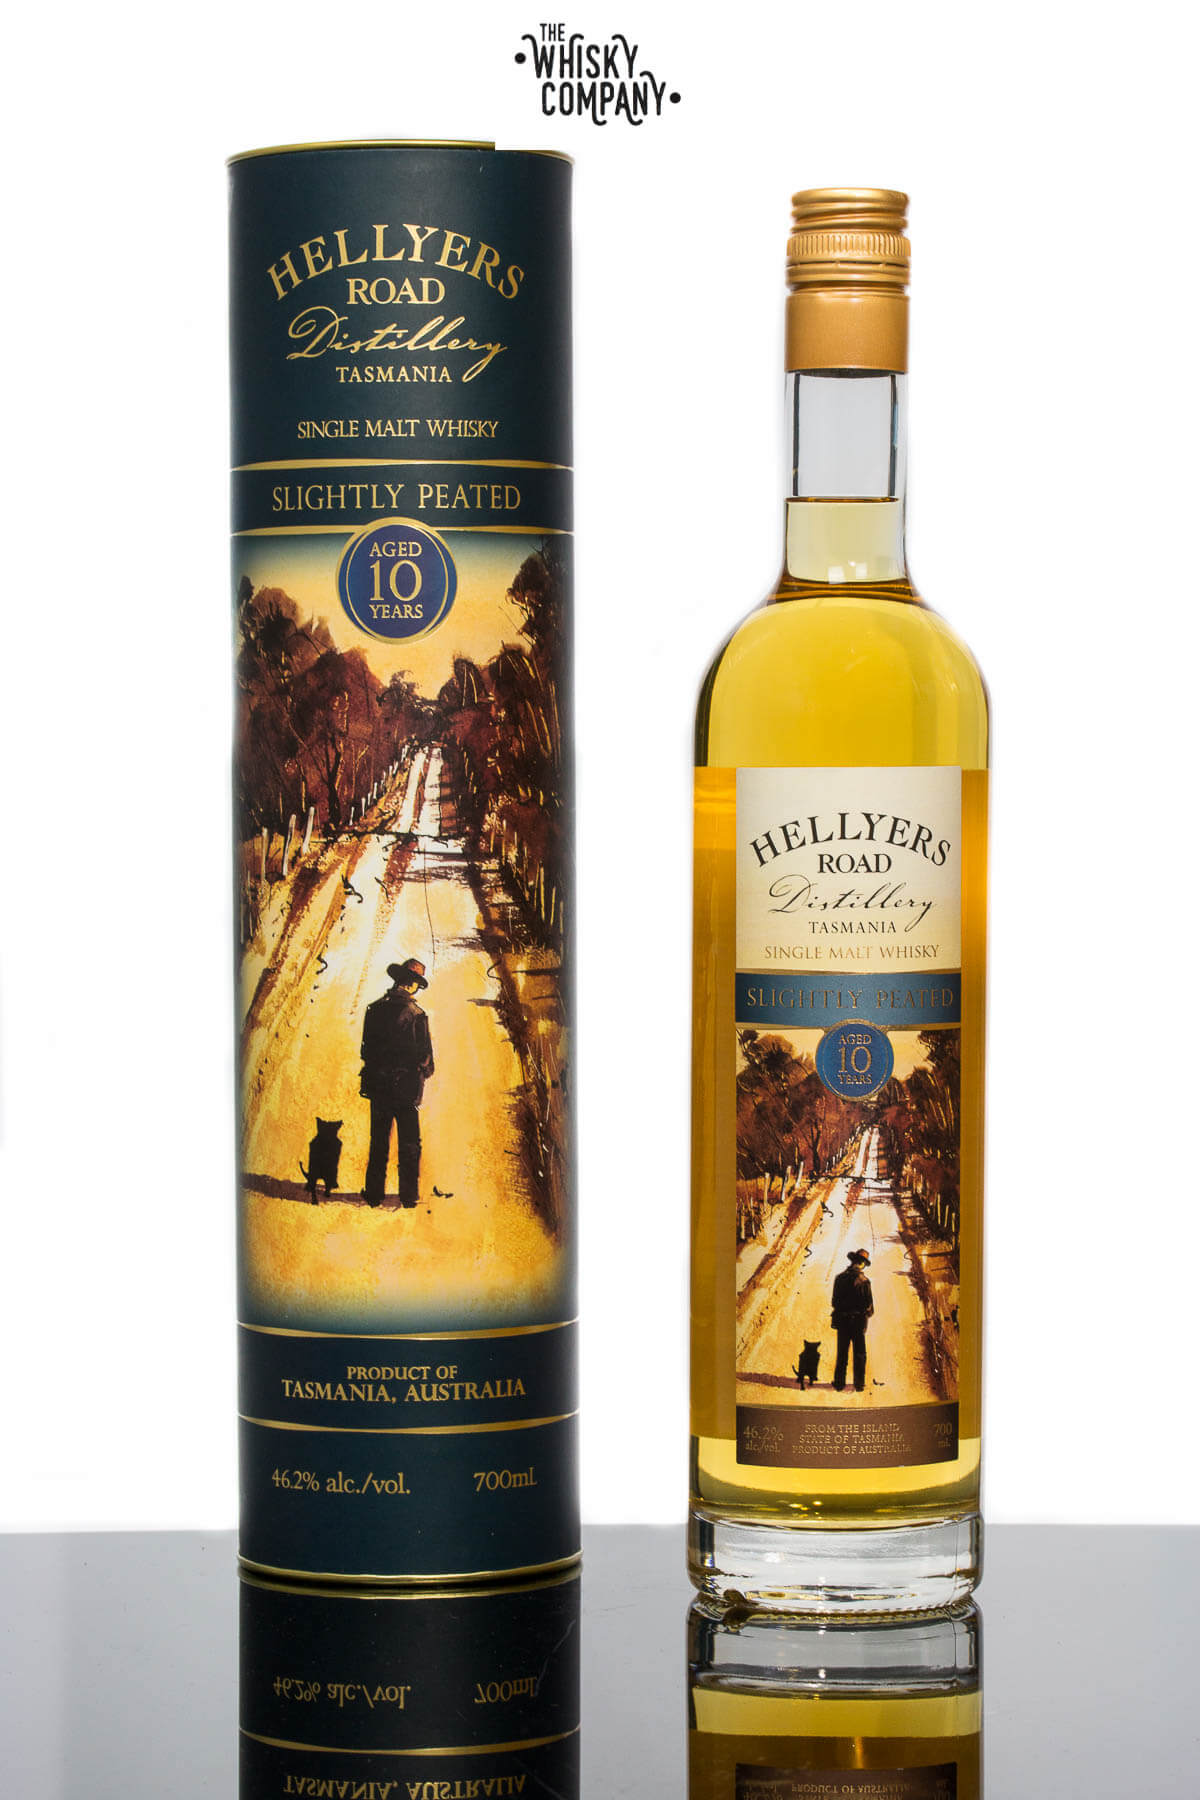 Hellyers Road Slightly Peated Aged 10 Years Australian Single Malt Whisky (700ml)